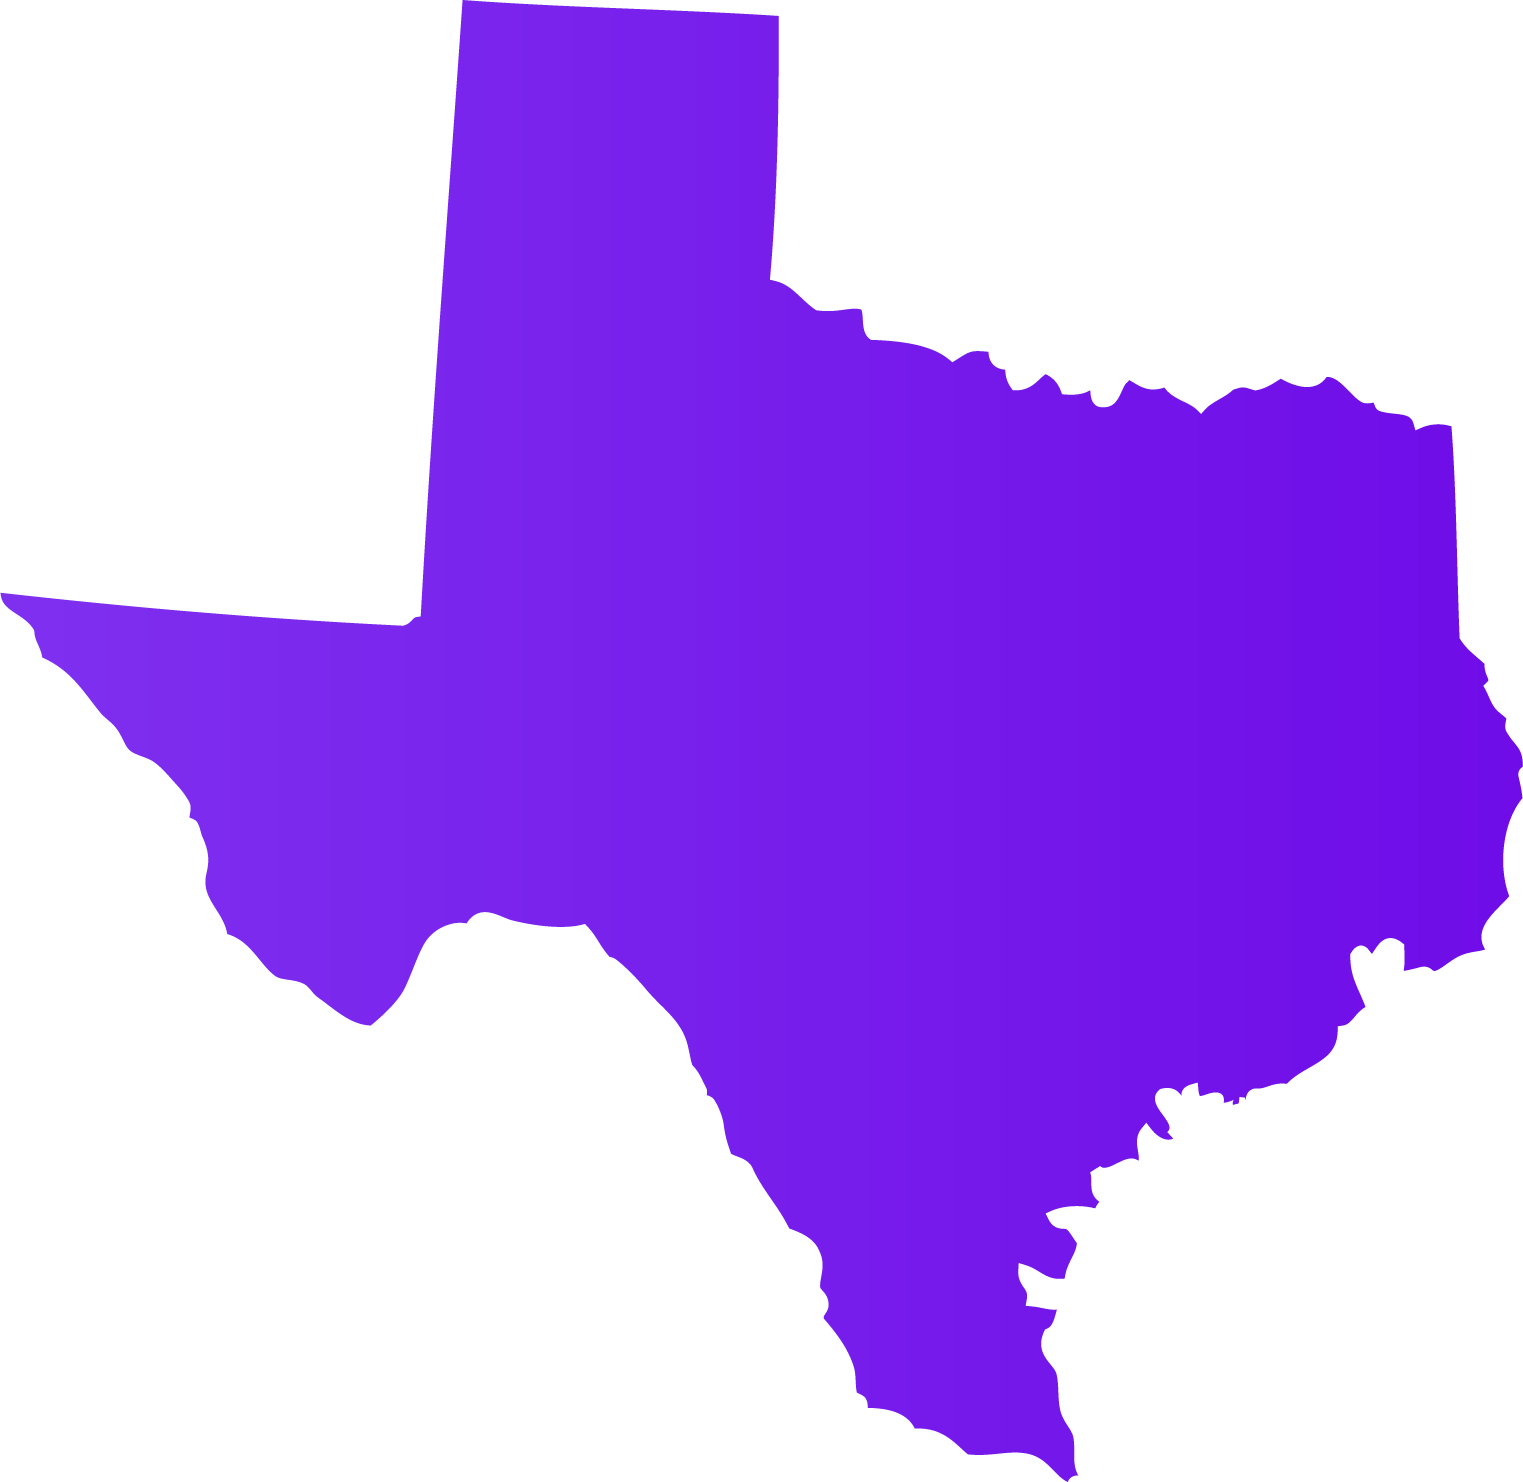 texas silhouette vector at getdrawings com free for personal use rh getdrawings com texas state outline vector